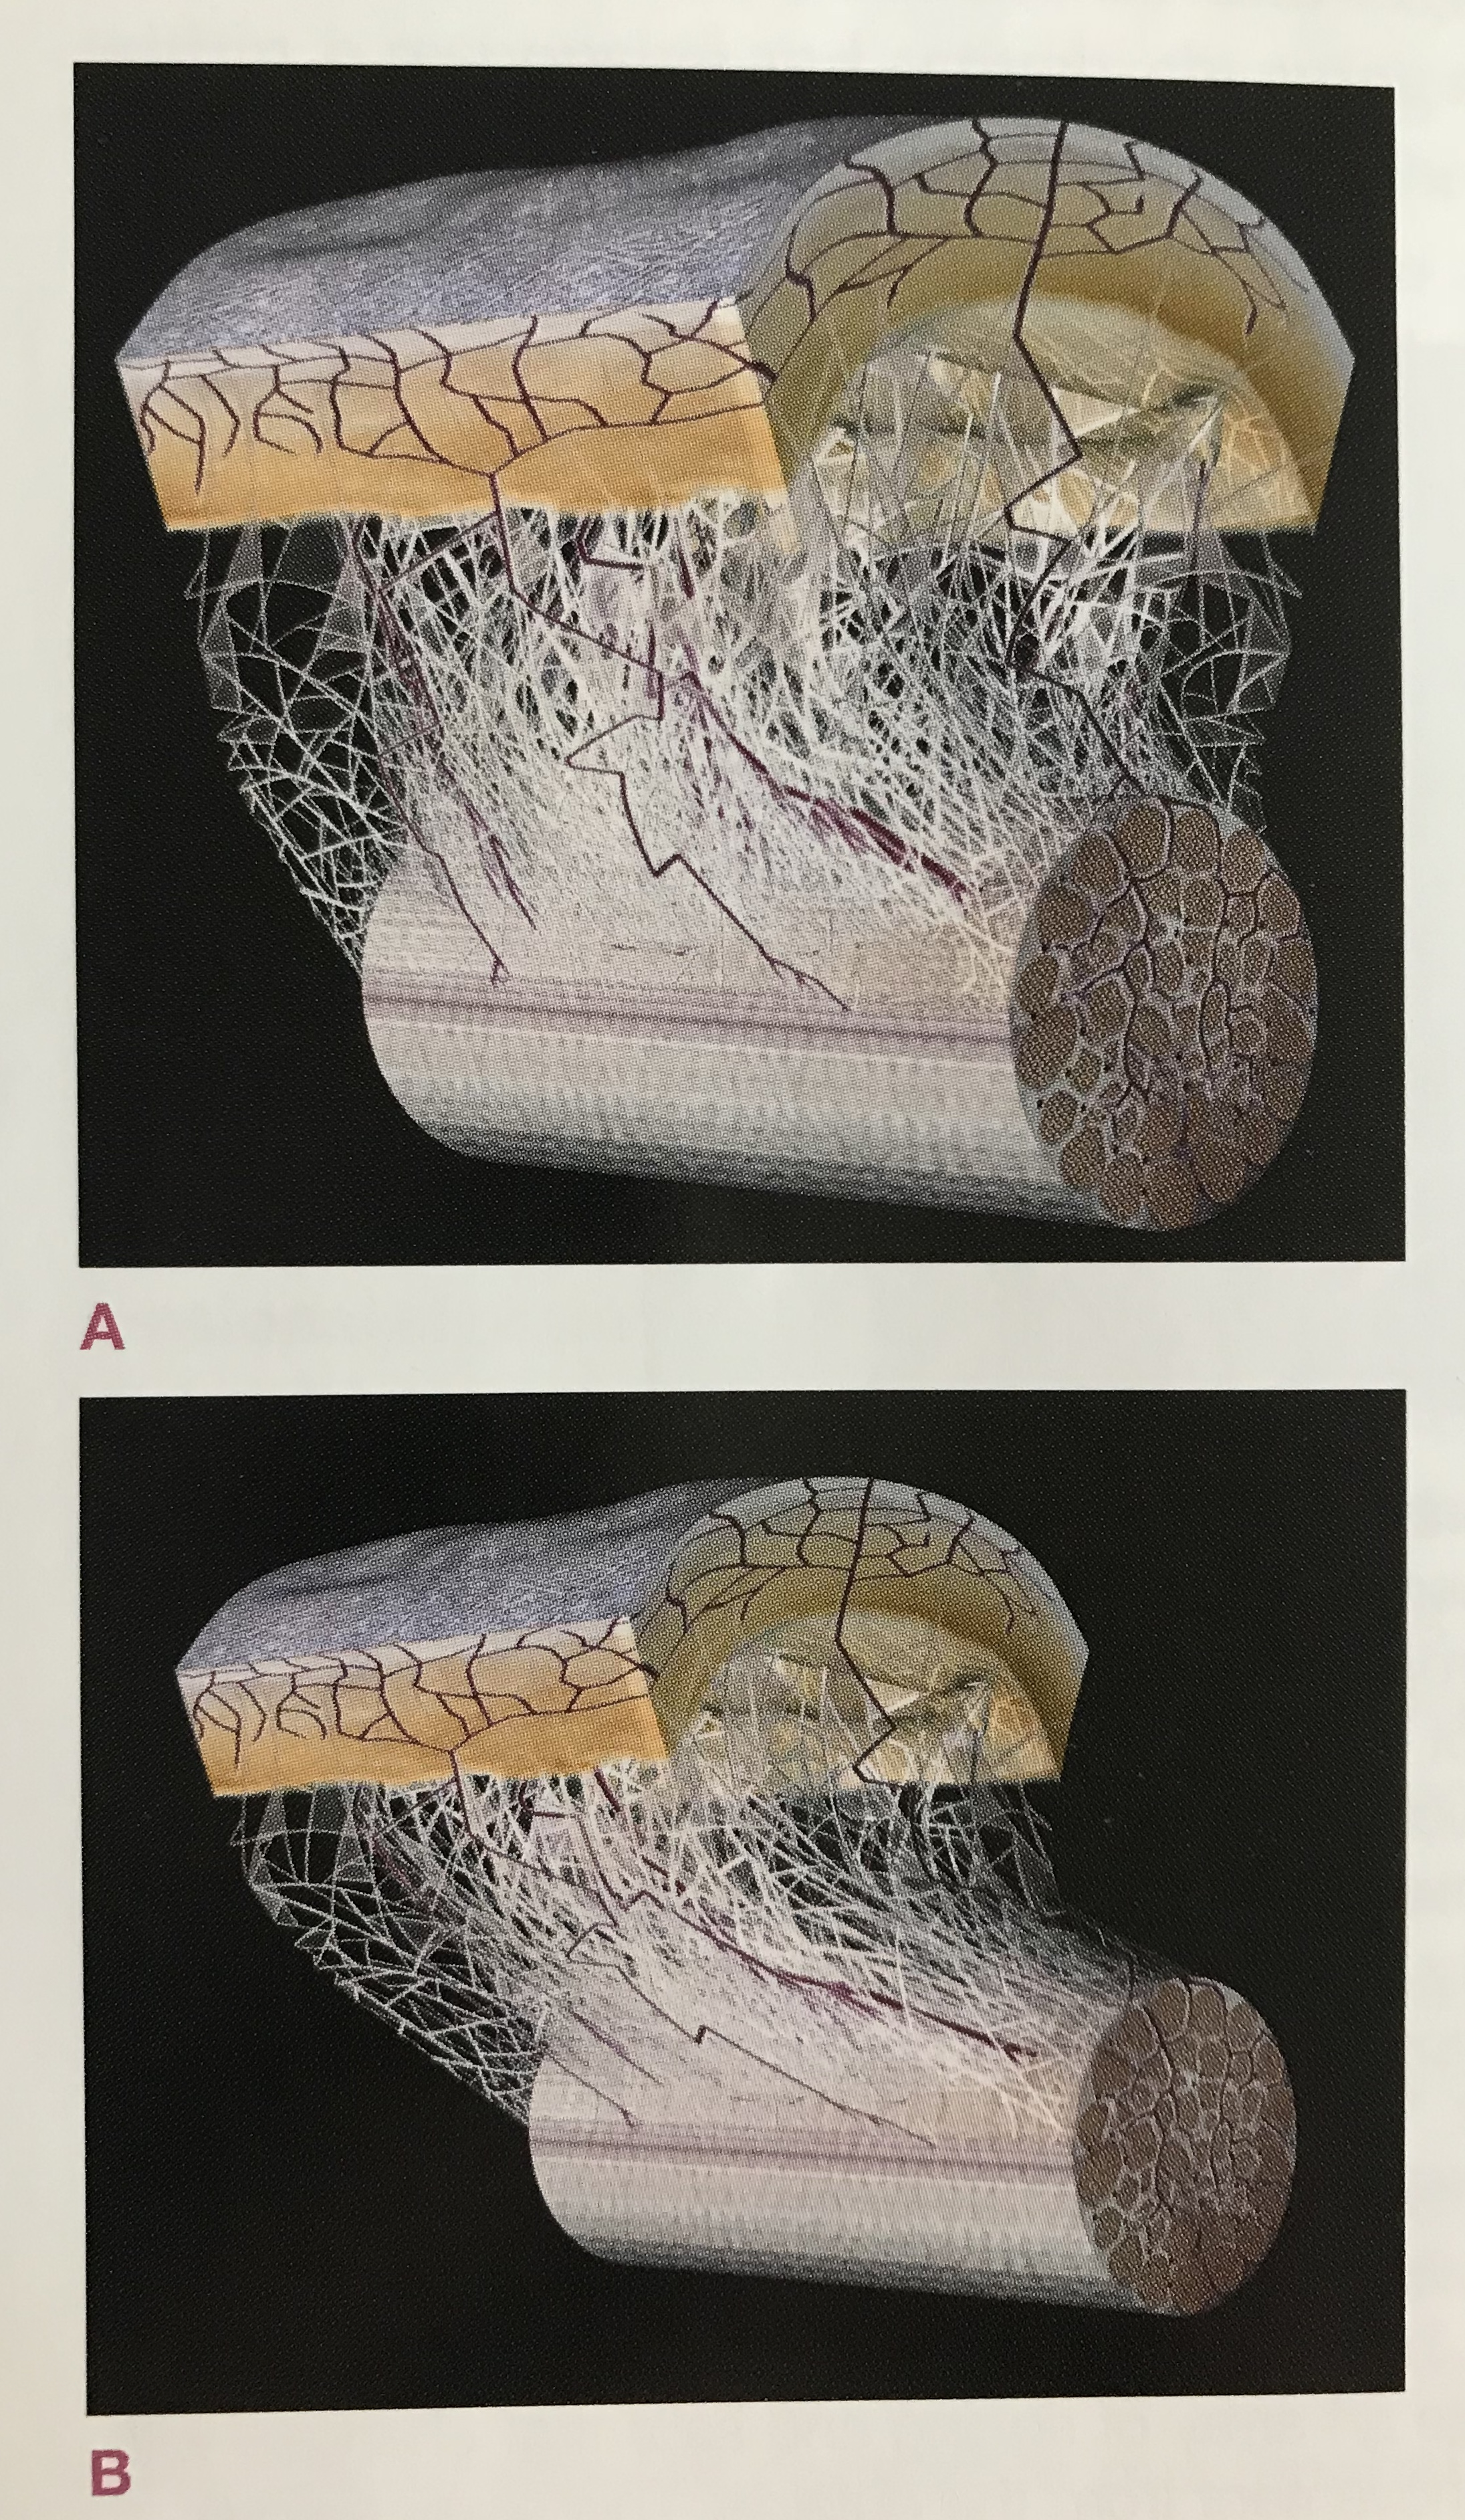 Image taken from the book, Anatomy Trains by Thomas Meyers. Originally from Dr. J. C. Guimberteau. A diagram of the microvacuole sliding system between the skin and the underlying tendons. -